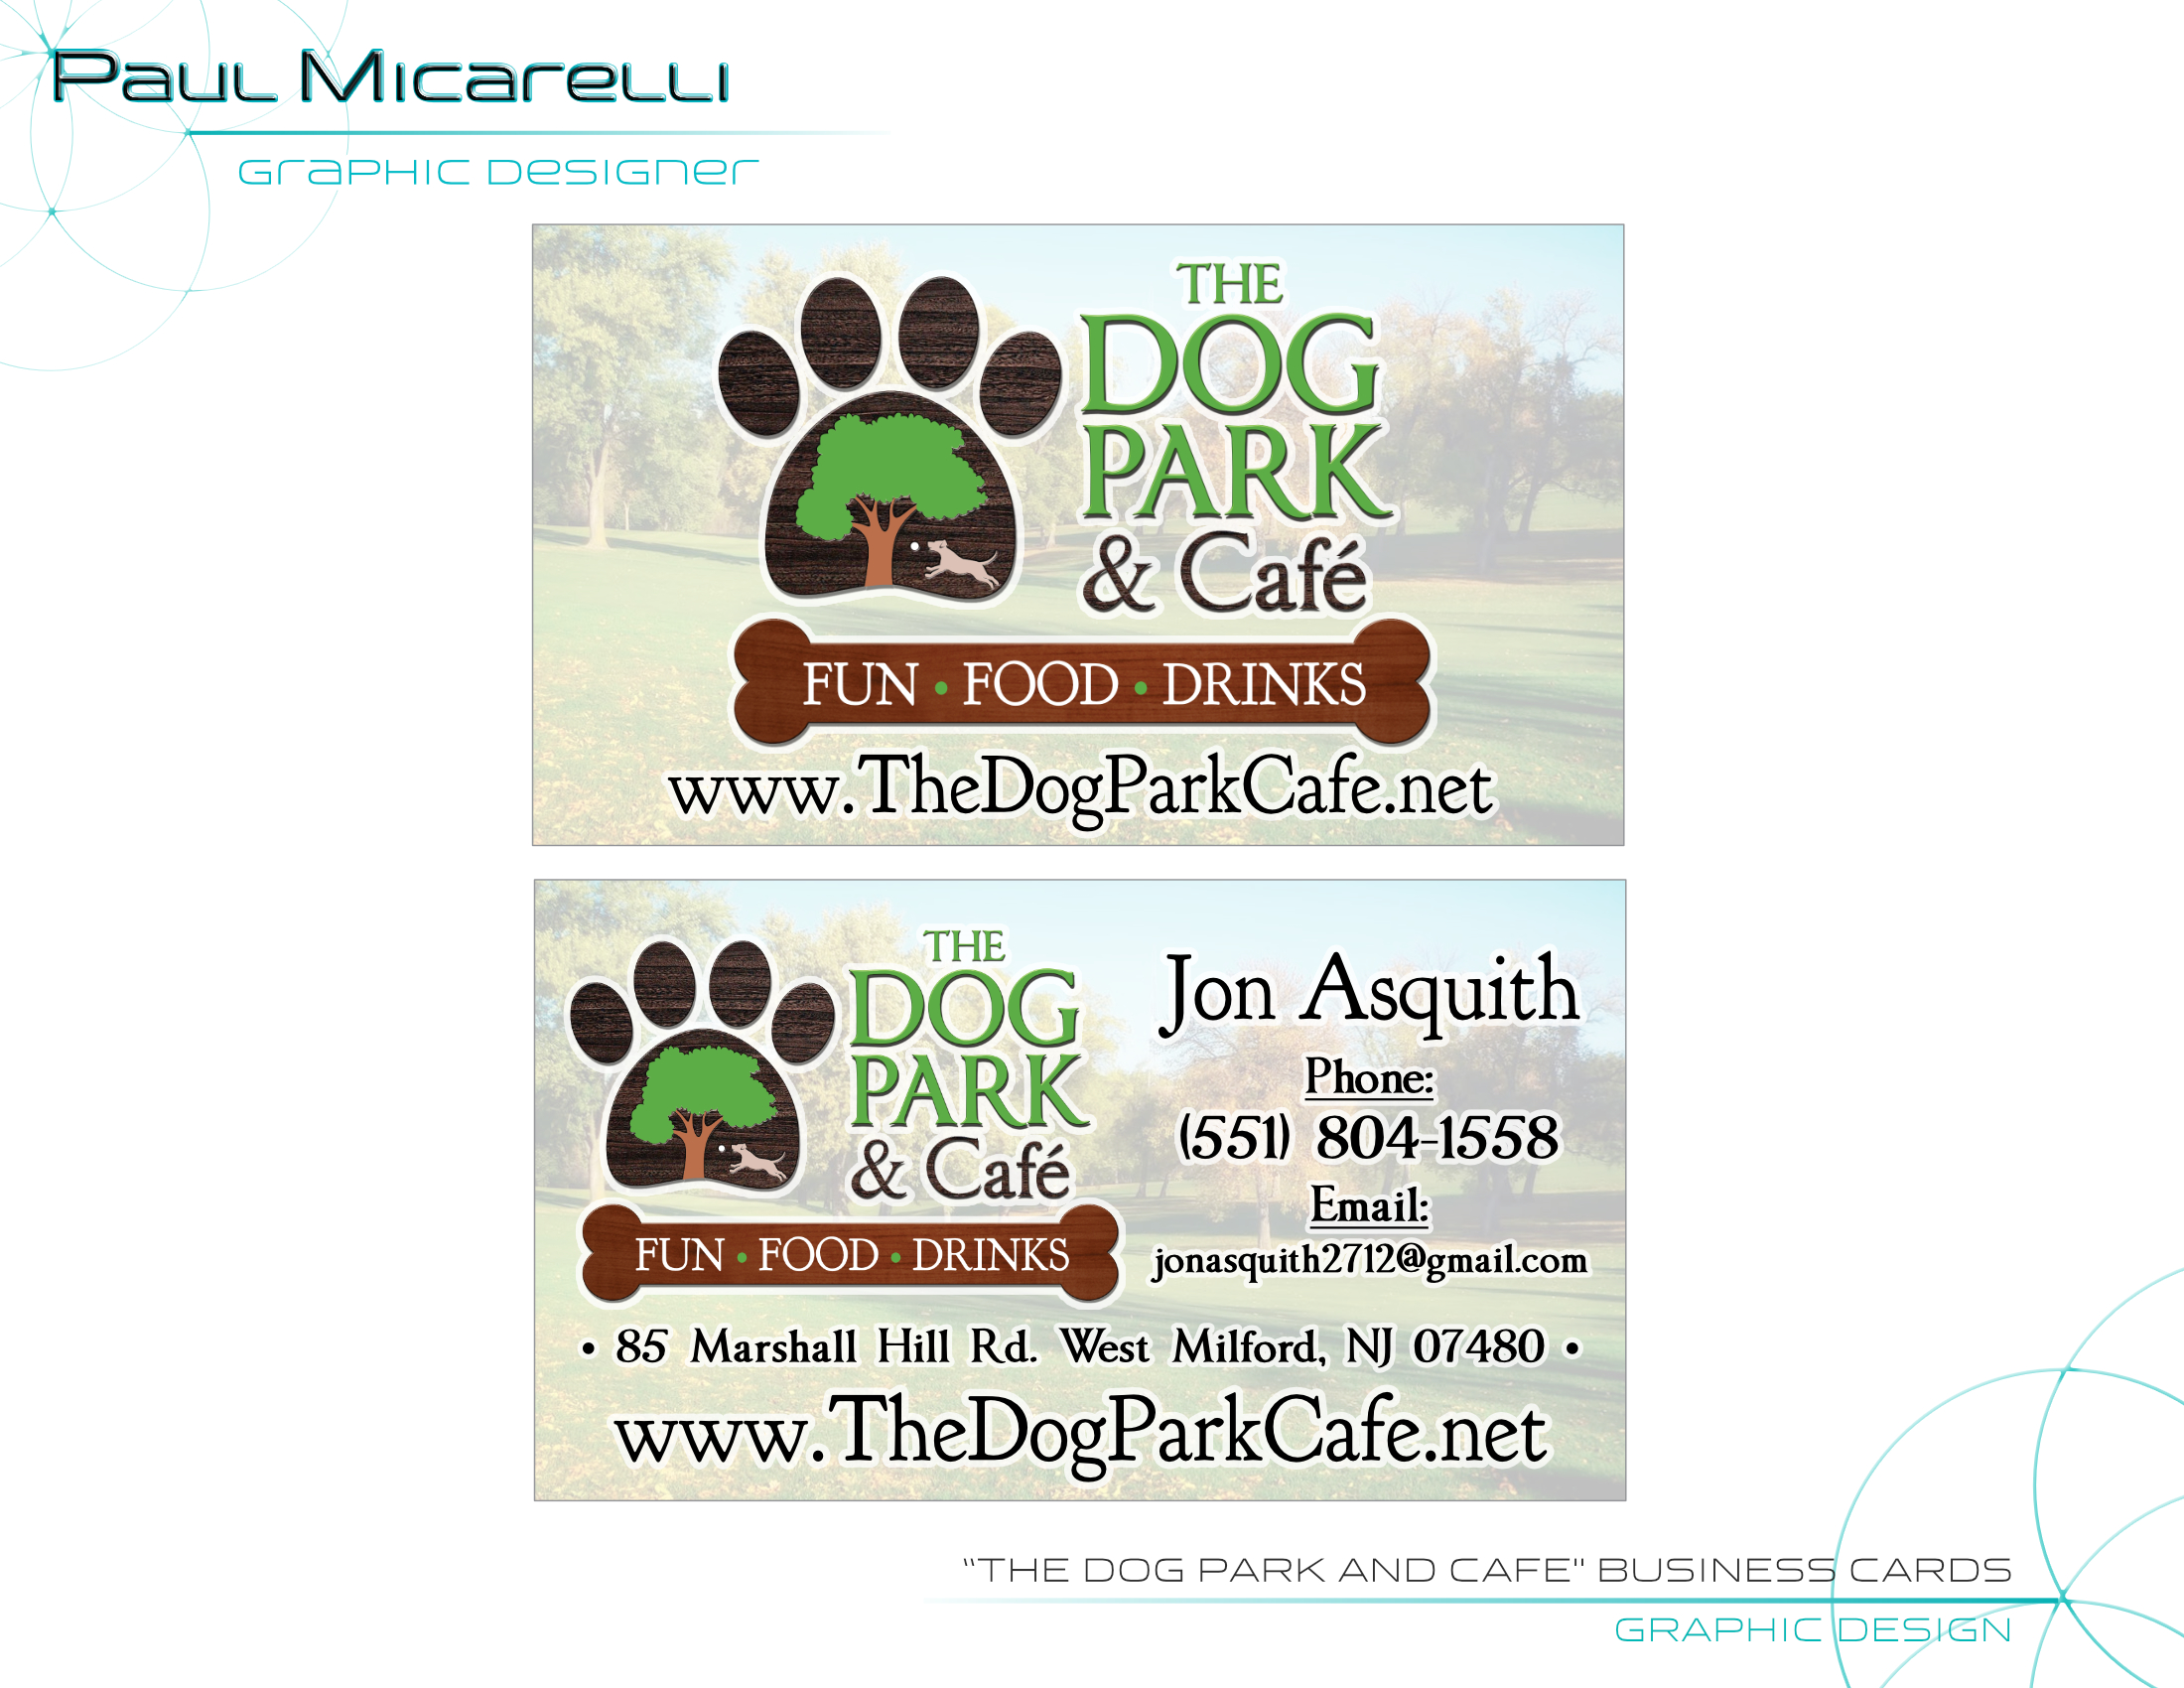 Paul-Micarelli-The Dog Park Cafe-Busines